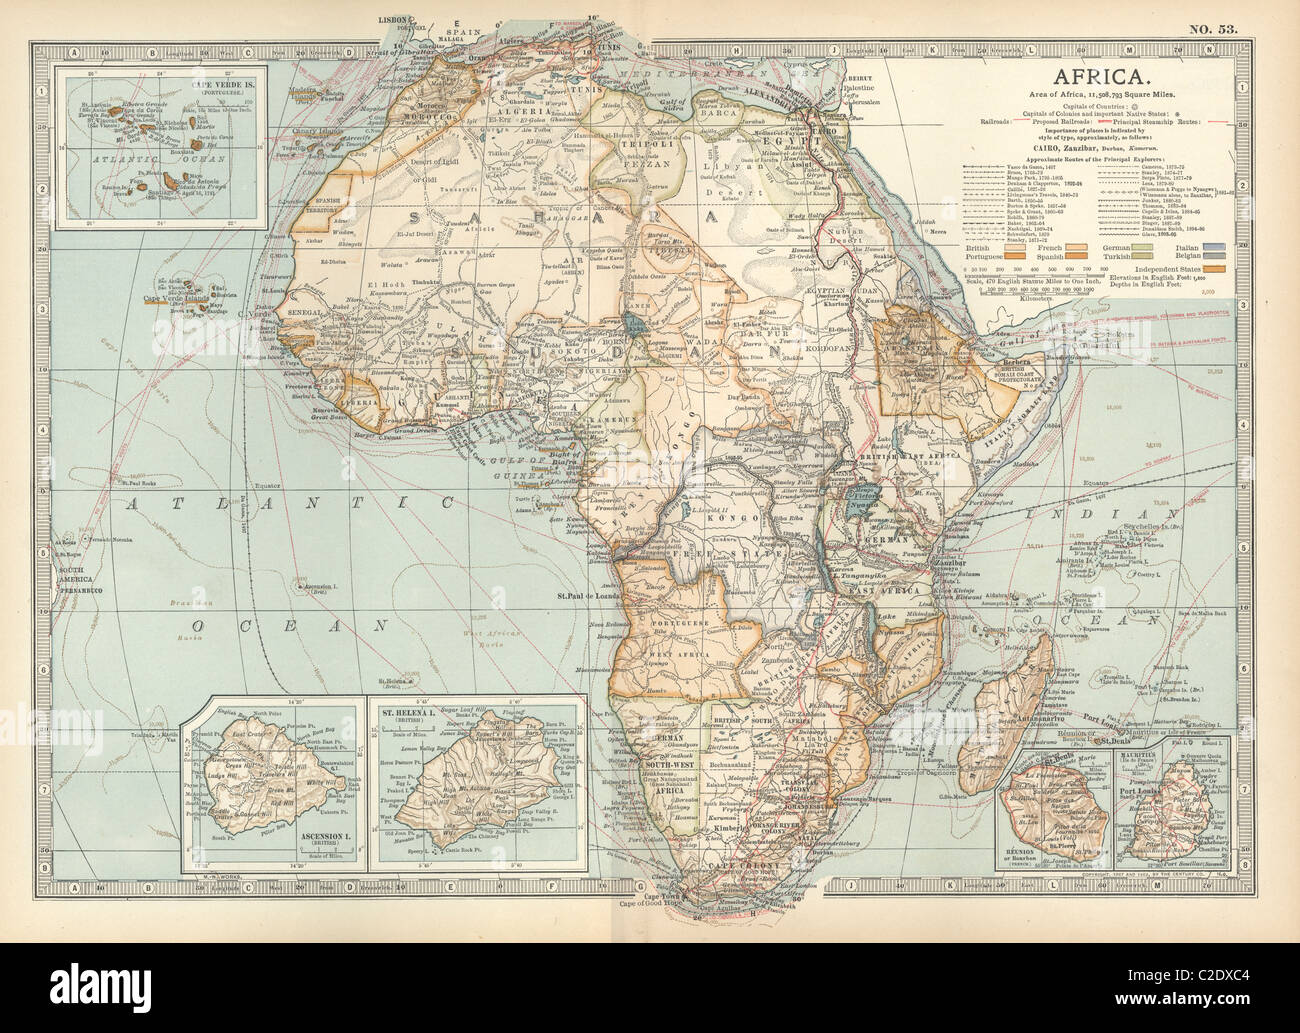 Map of colonial Africa - Stock Image